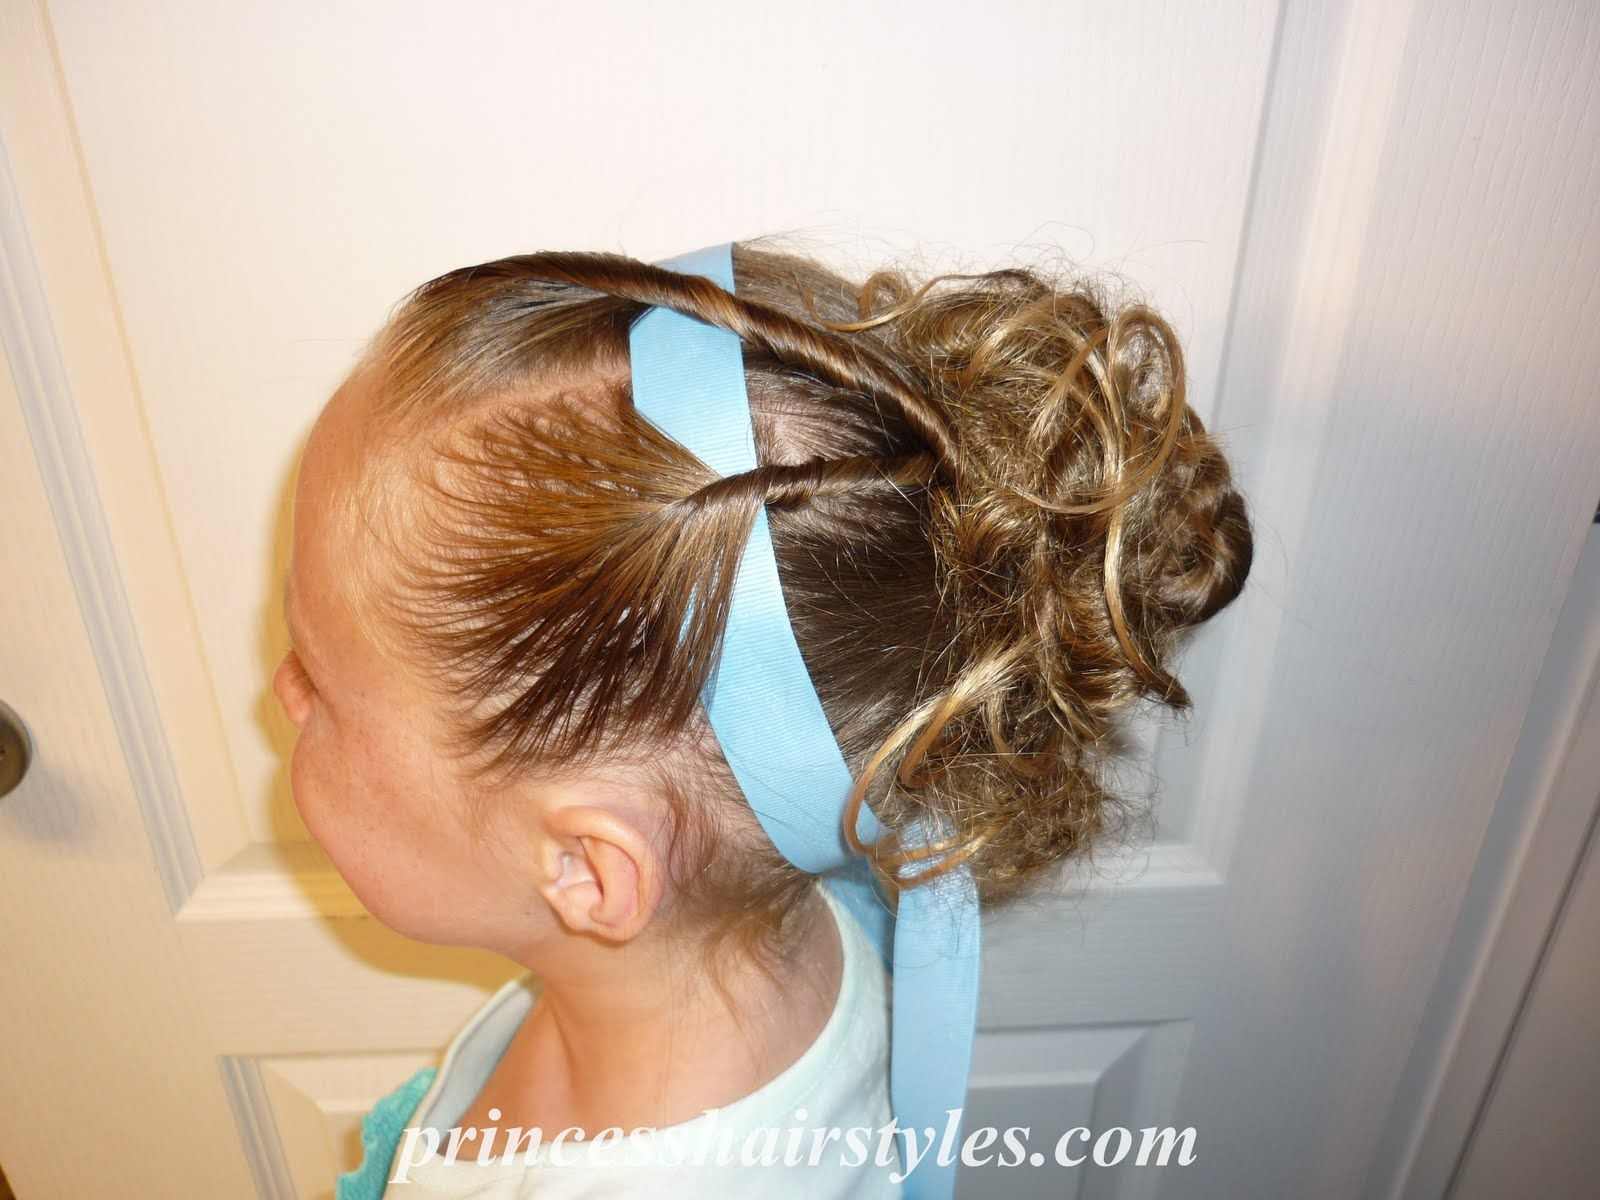 hairstyles for dance competition, recital | hair | dance